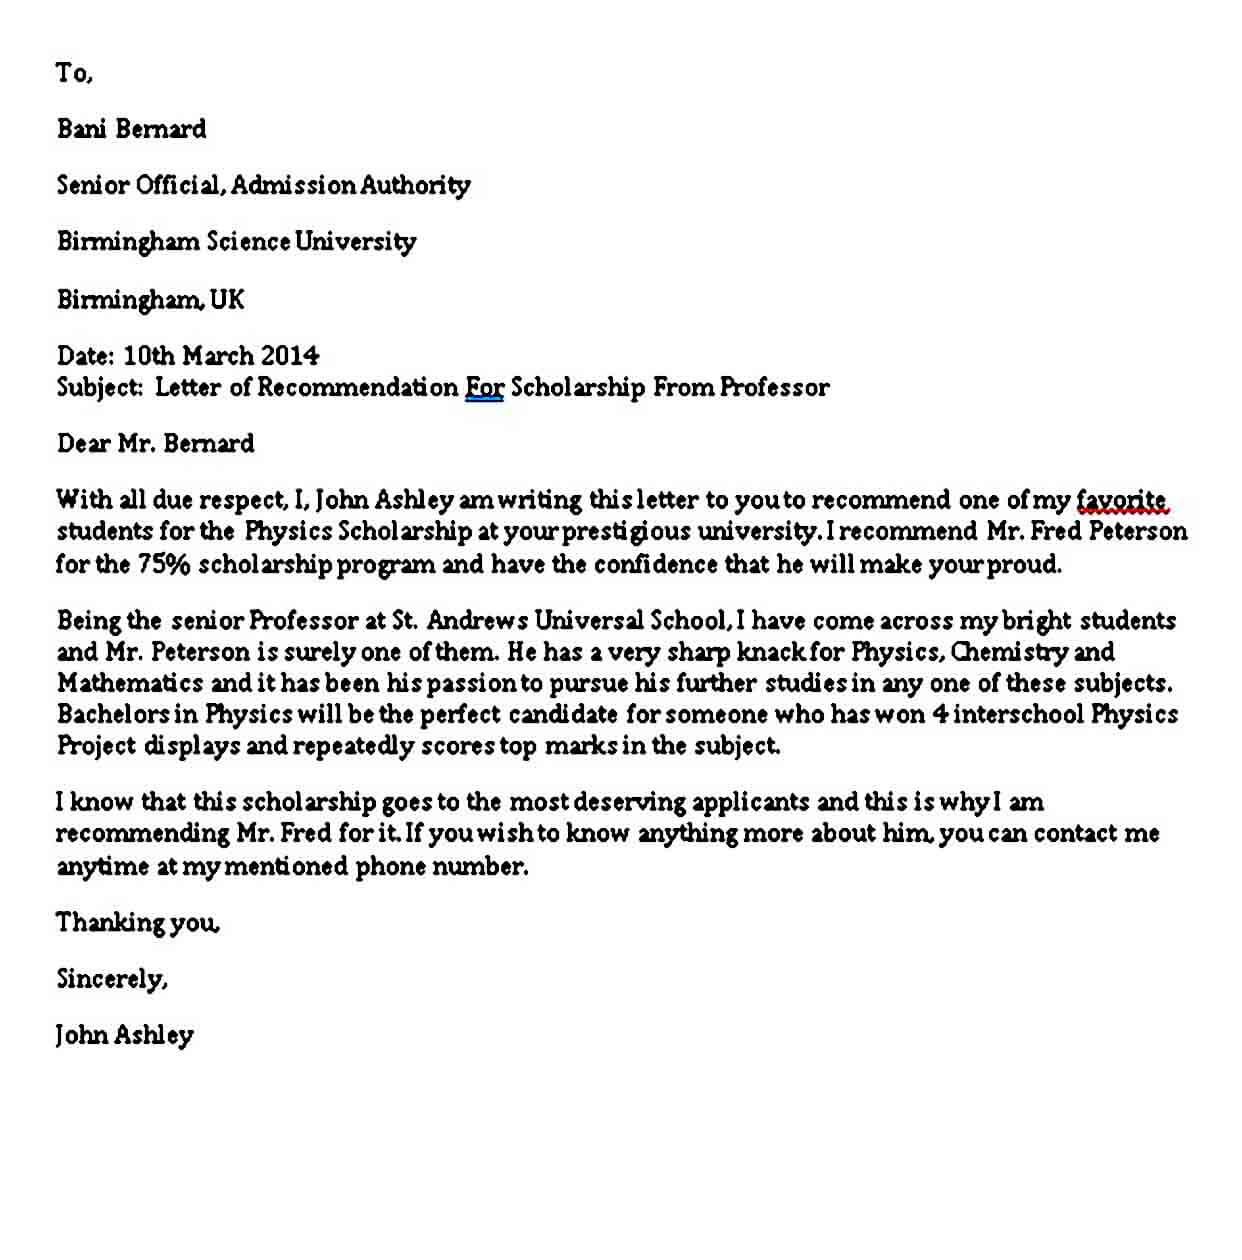 Letter of Recommendation For Scholarship From Professor